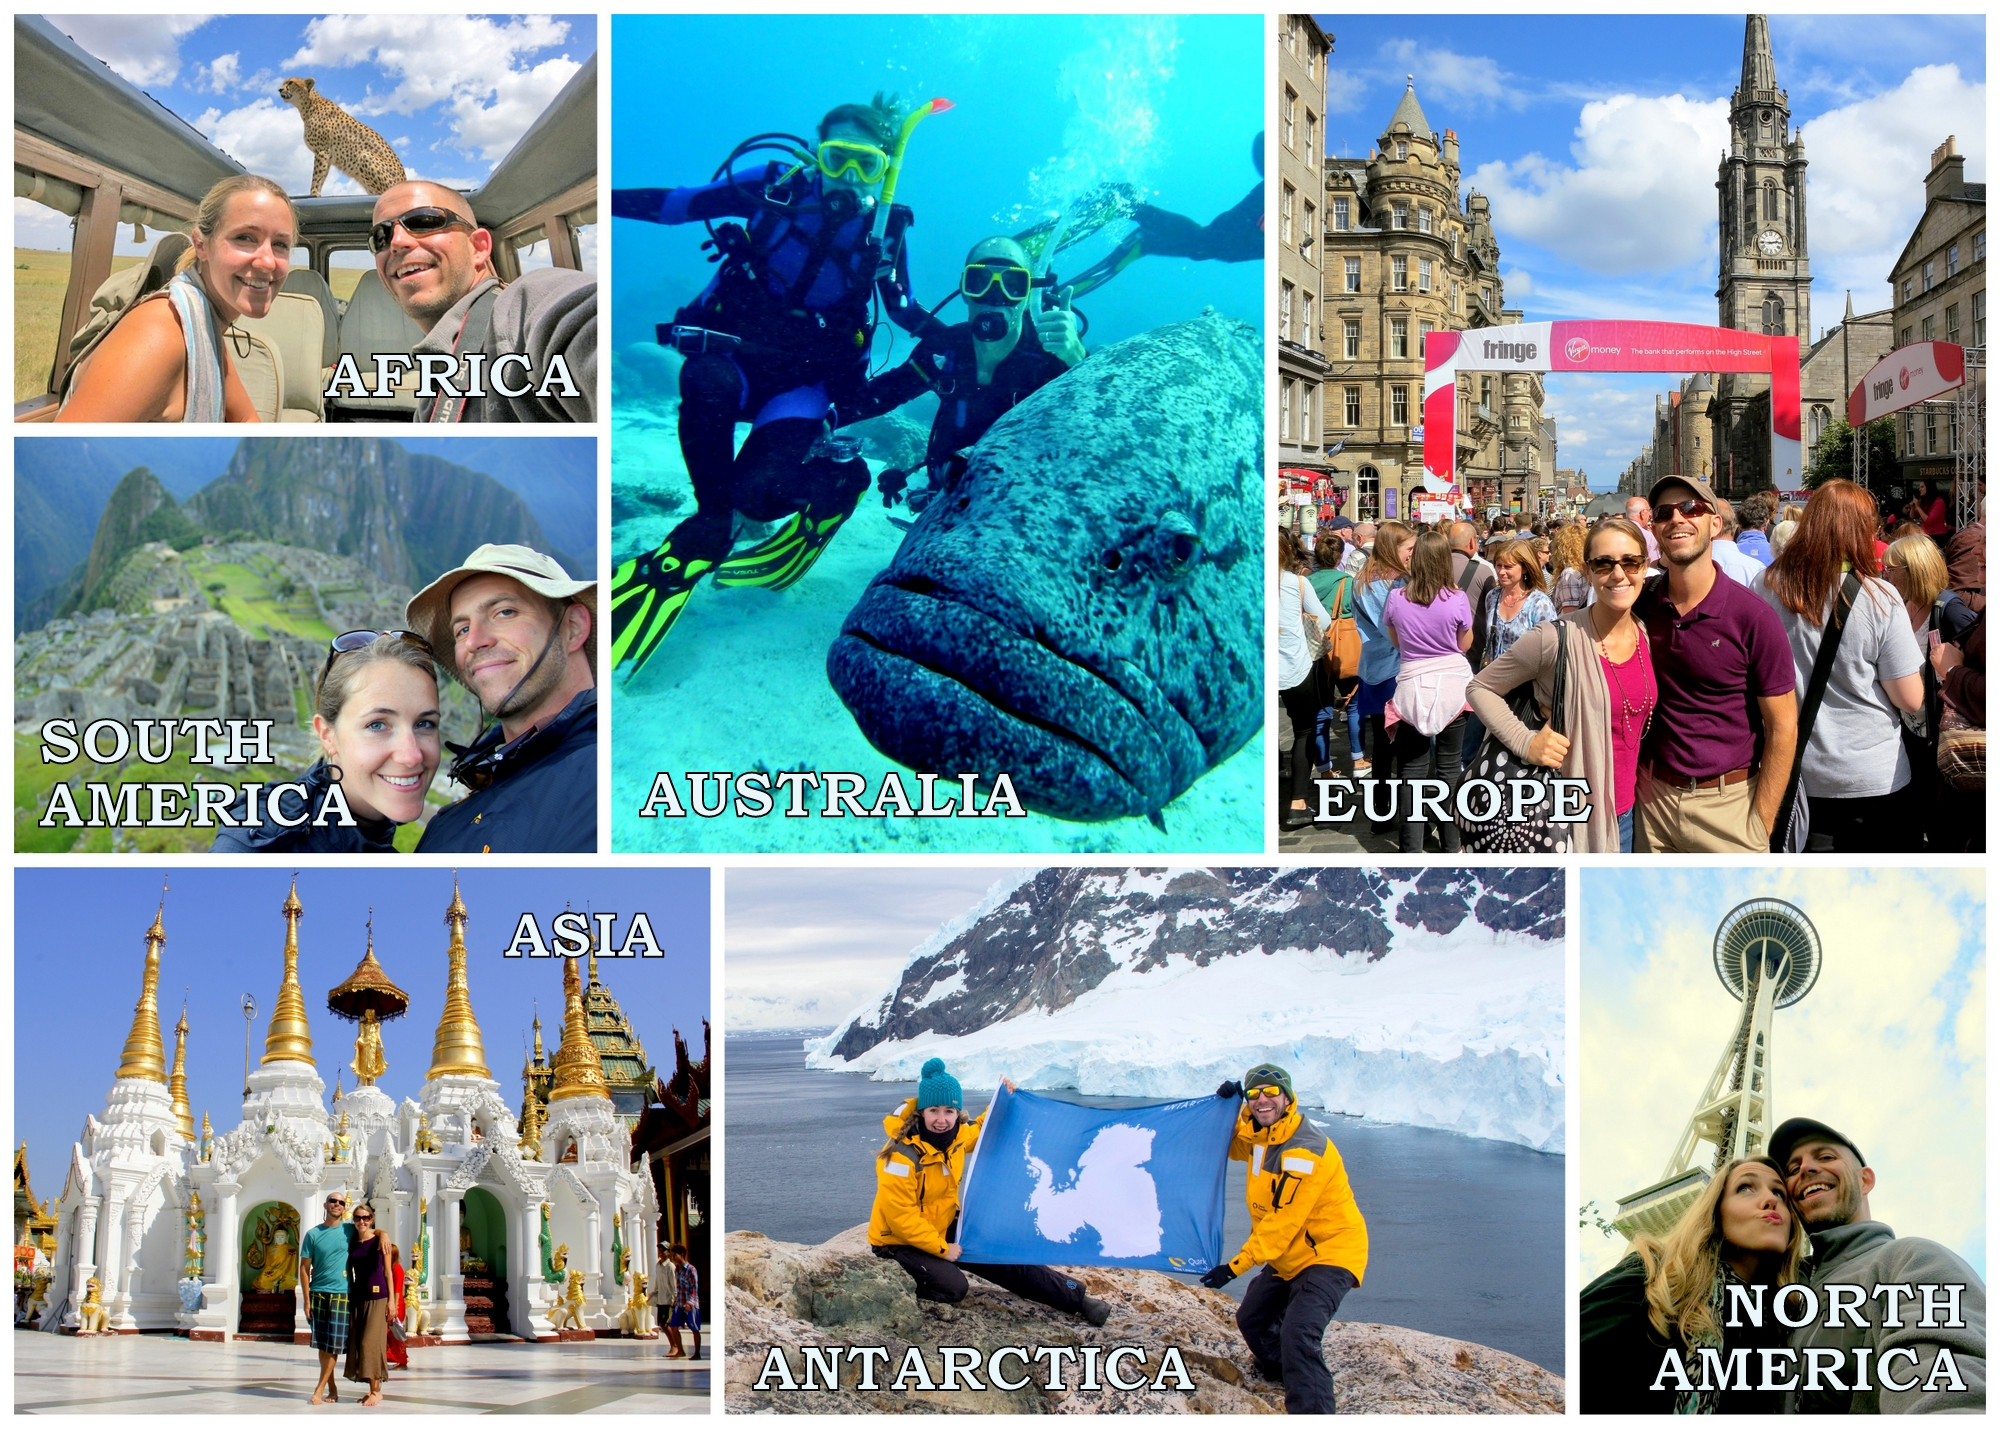 The World S Longest Honeymoon Reaches 7 Continents